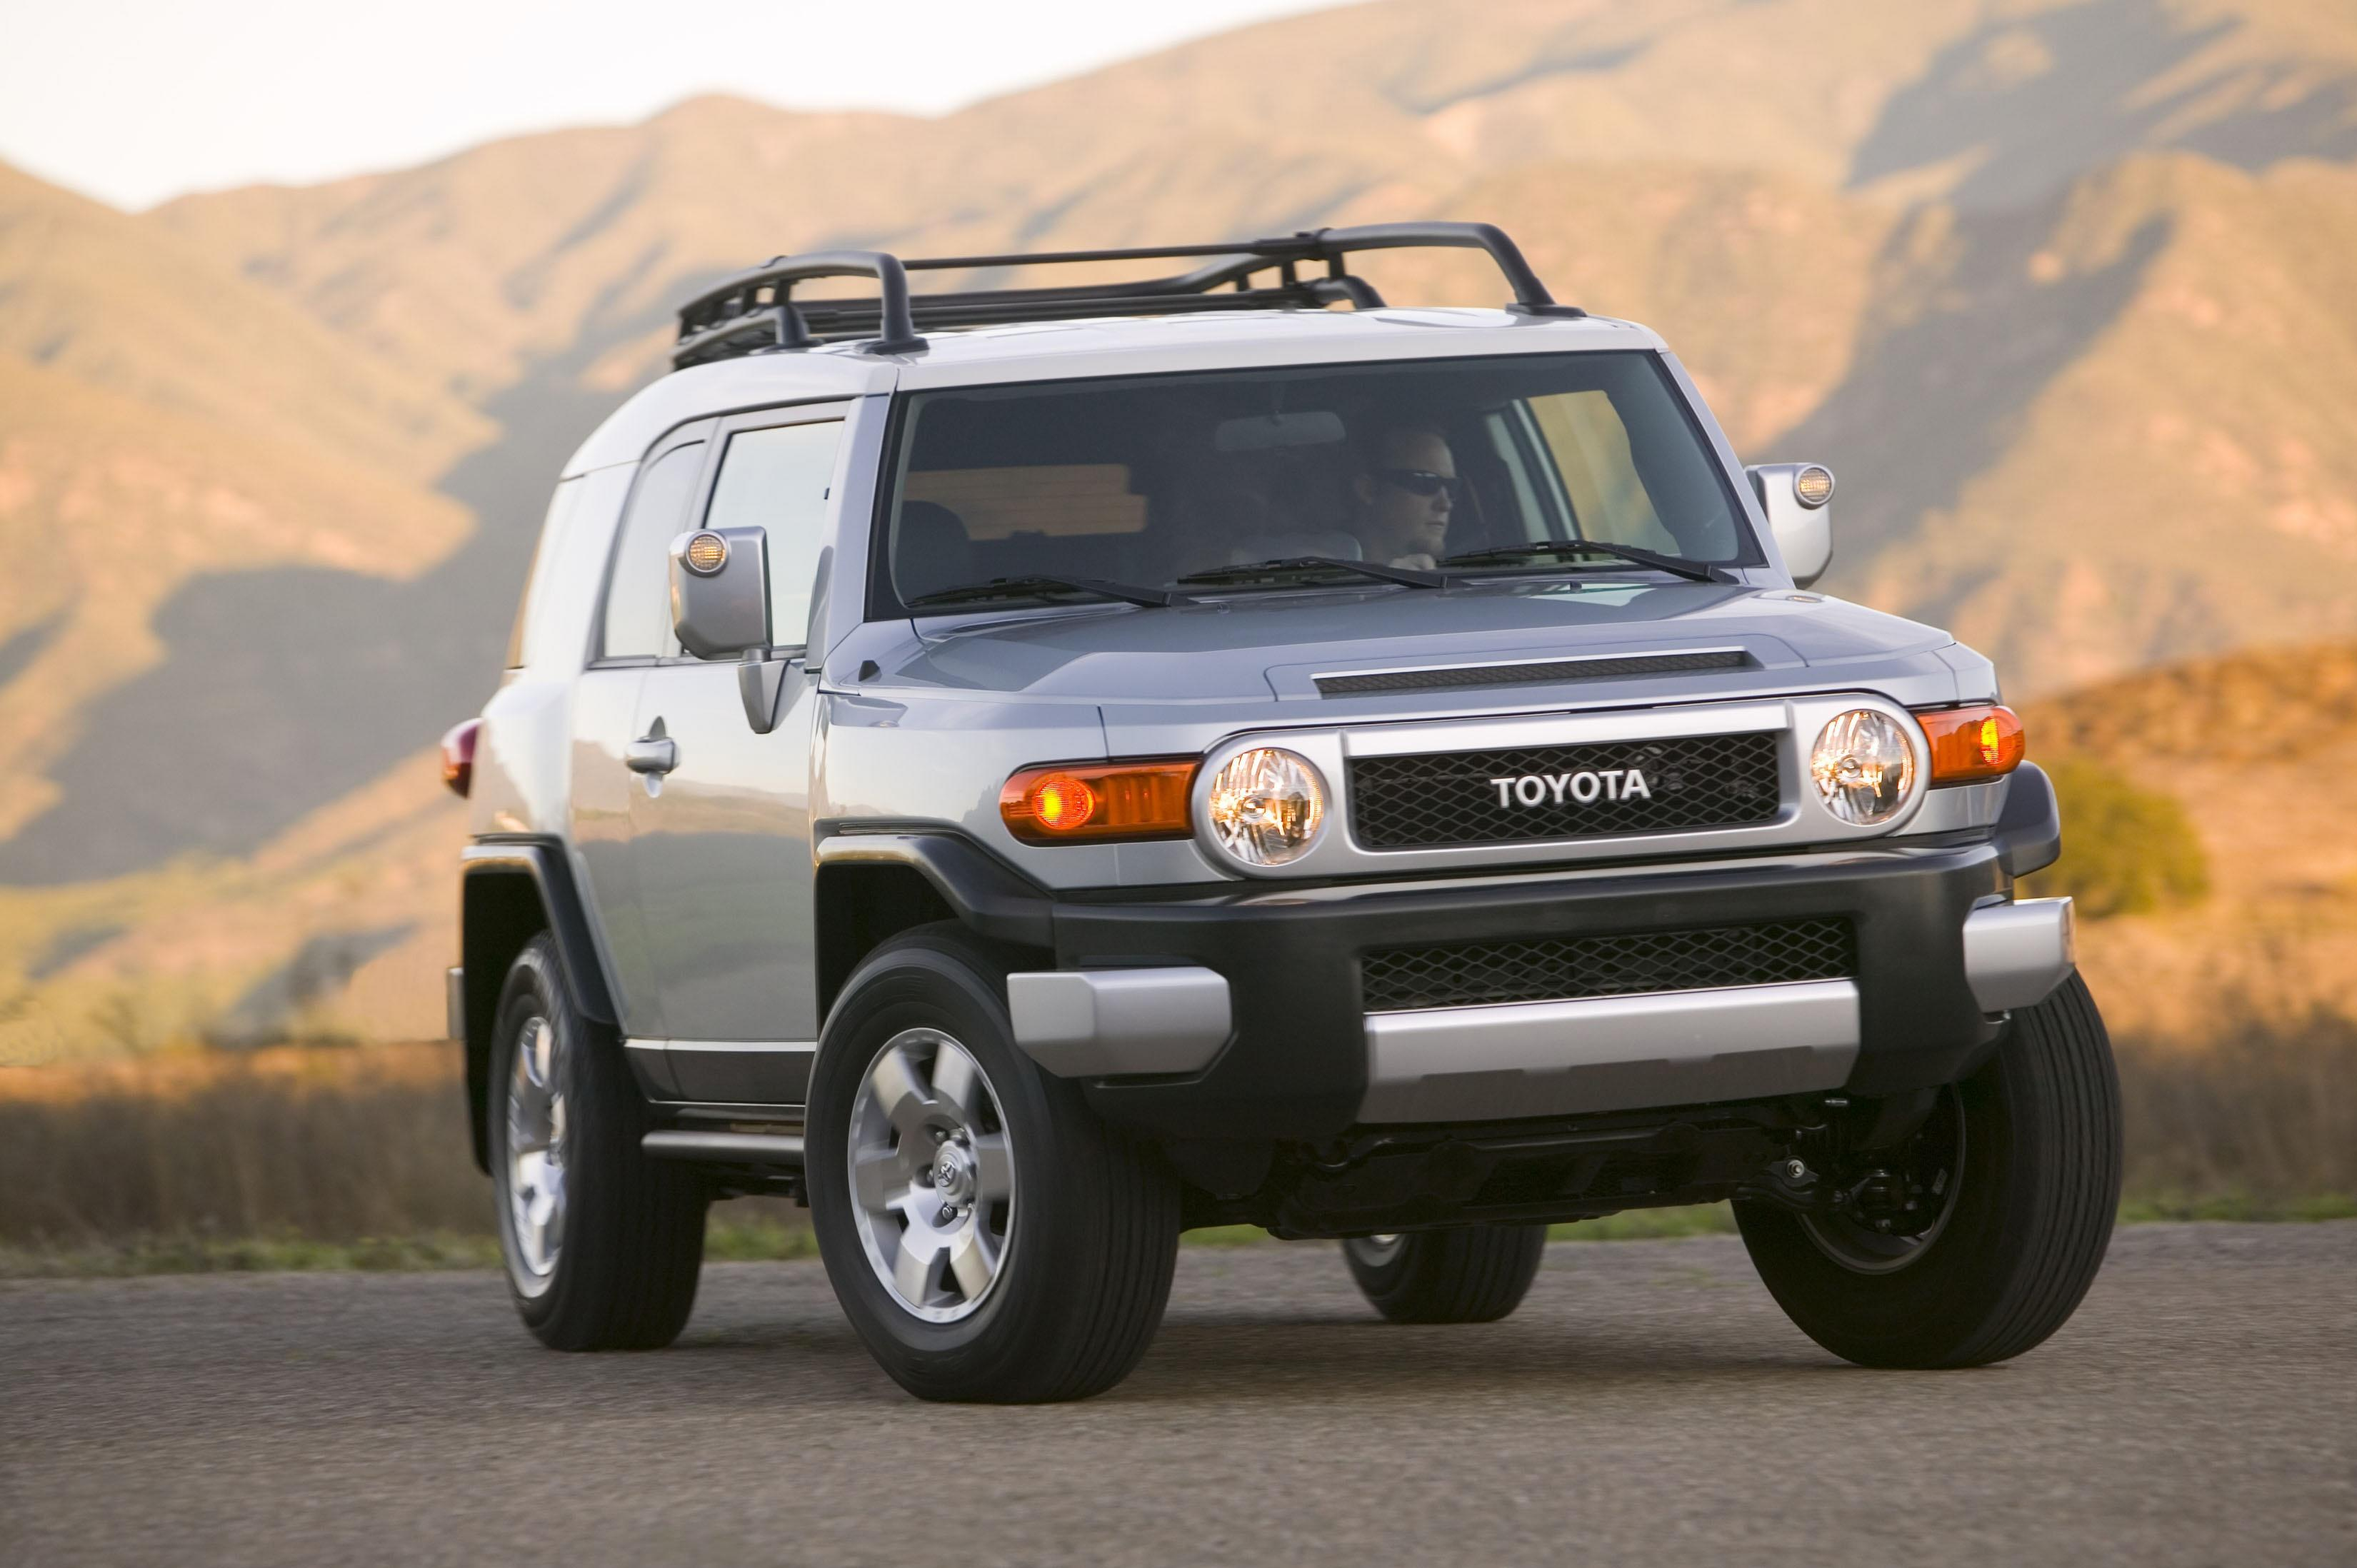 toyota fj cruiser adds safety features and new colors for 2009. Black Bedroom Furniture Sets. Home Design Ideas